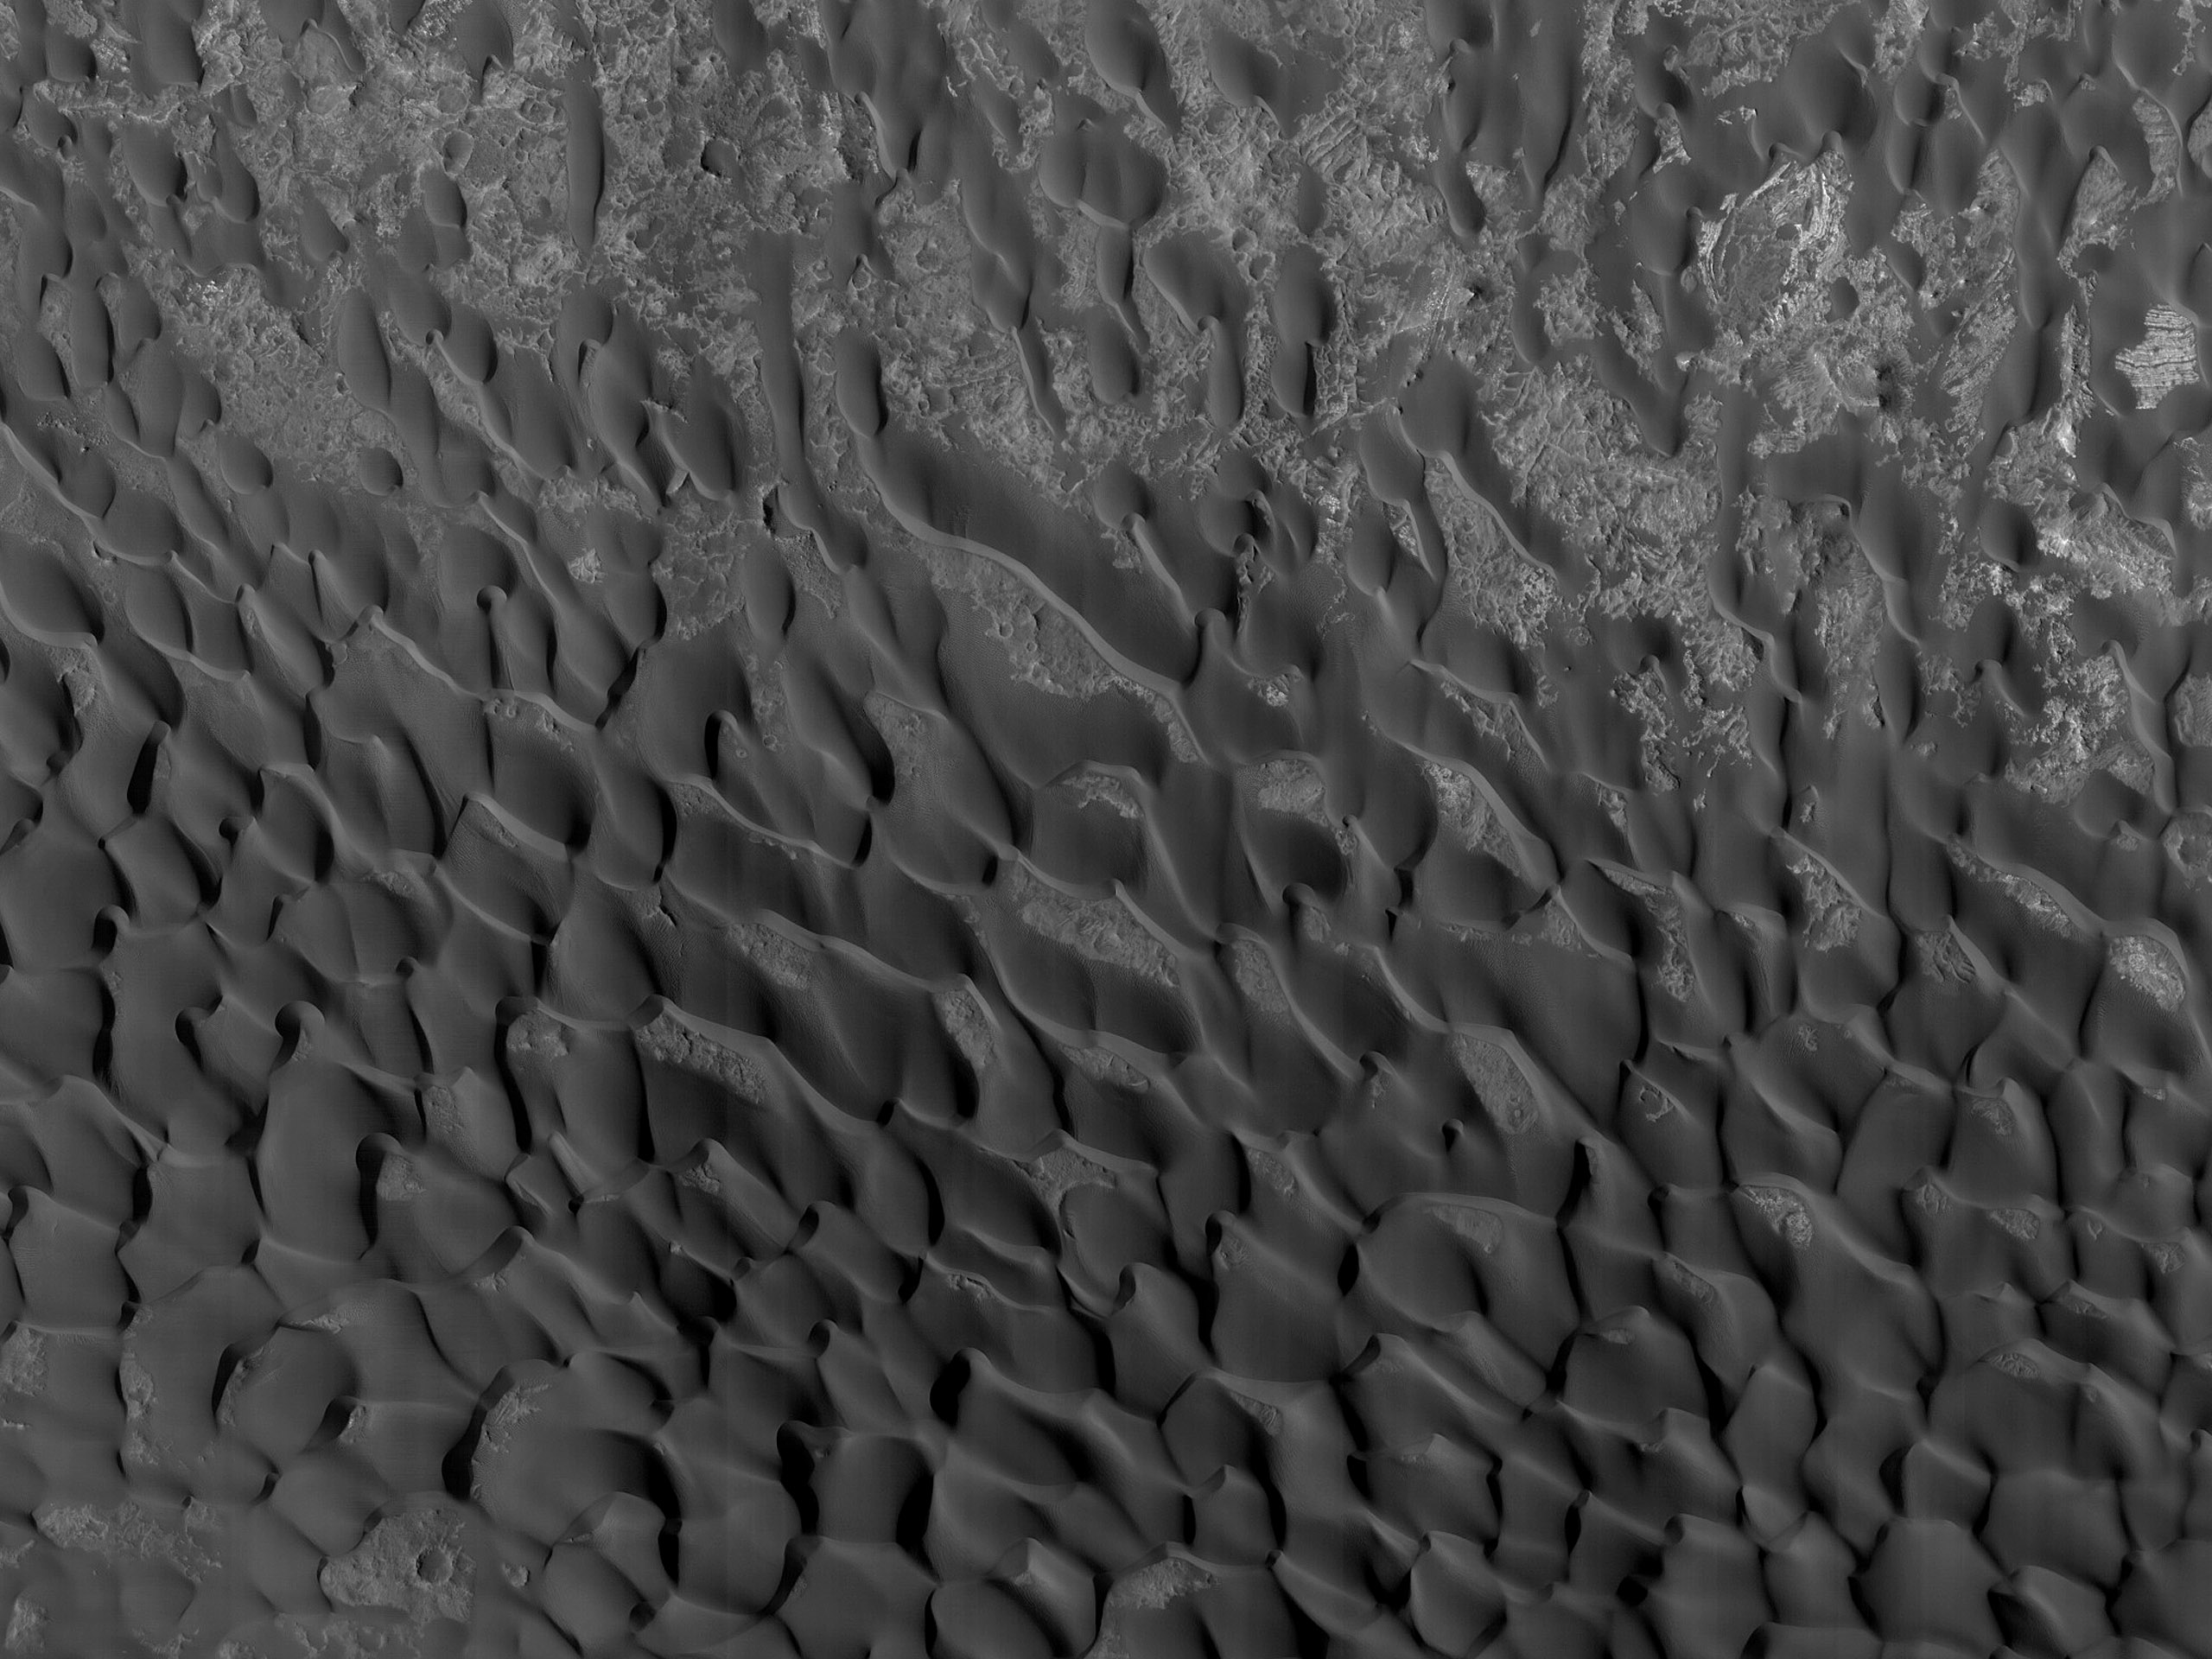 Dunes in Becquerel Crater